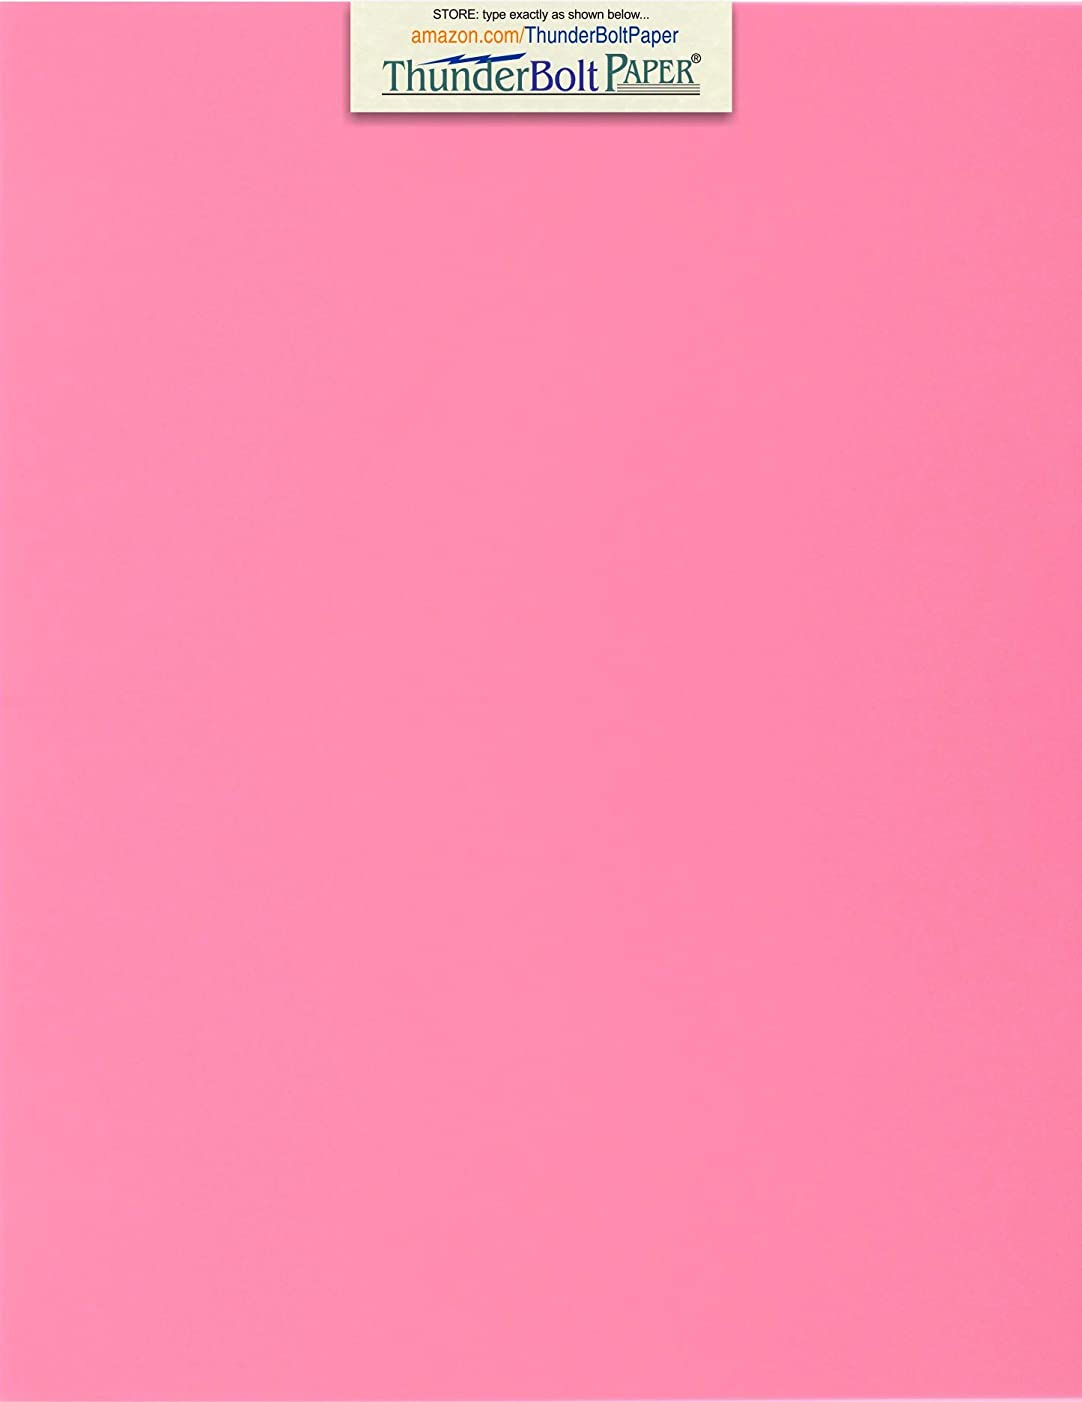 50 Bright Pink 65lb Cover|Card Paper - 8 X 10 Inches Photo & Picture-Frame Size - 65 lb/Pound Light Weight Cardstock - Quality Printable Smooth Surface for Bright Colorful Results